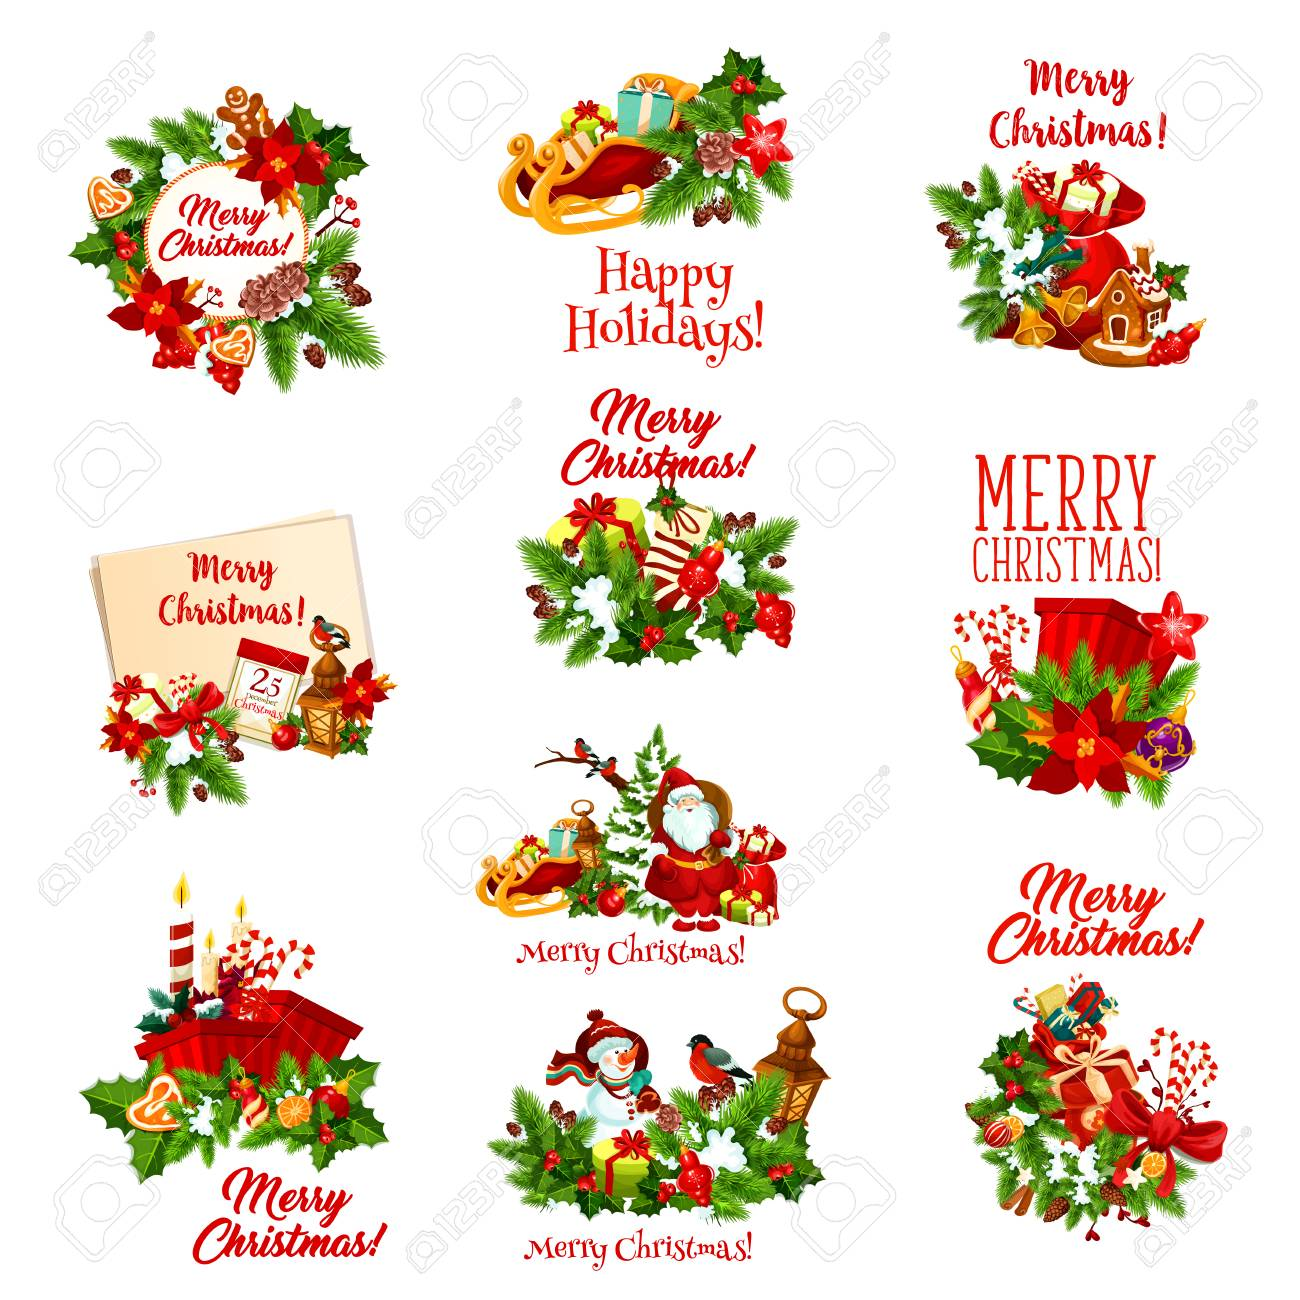 Christmas Holidays Icon.Merry Christmas Holiday Festive Icon Xmas Gift Tree And Holly